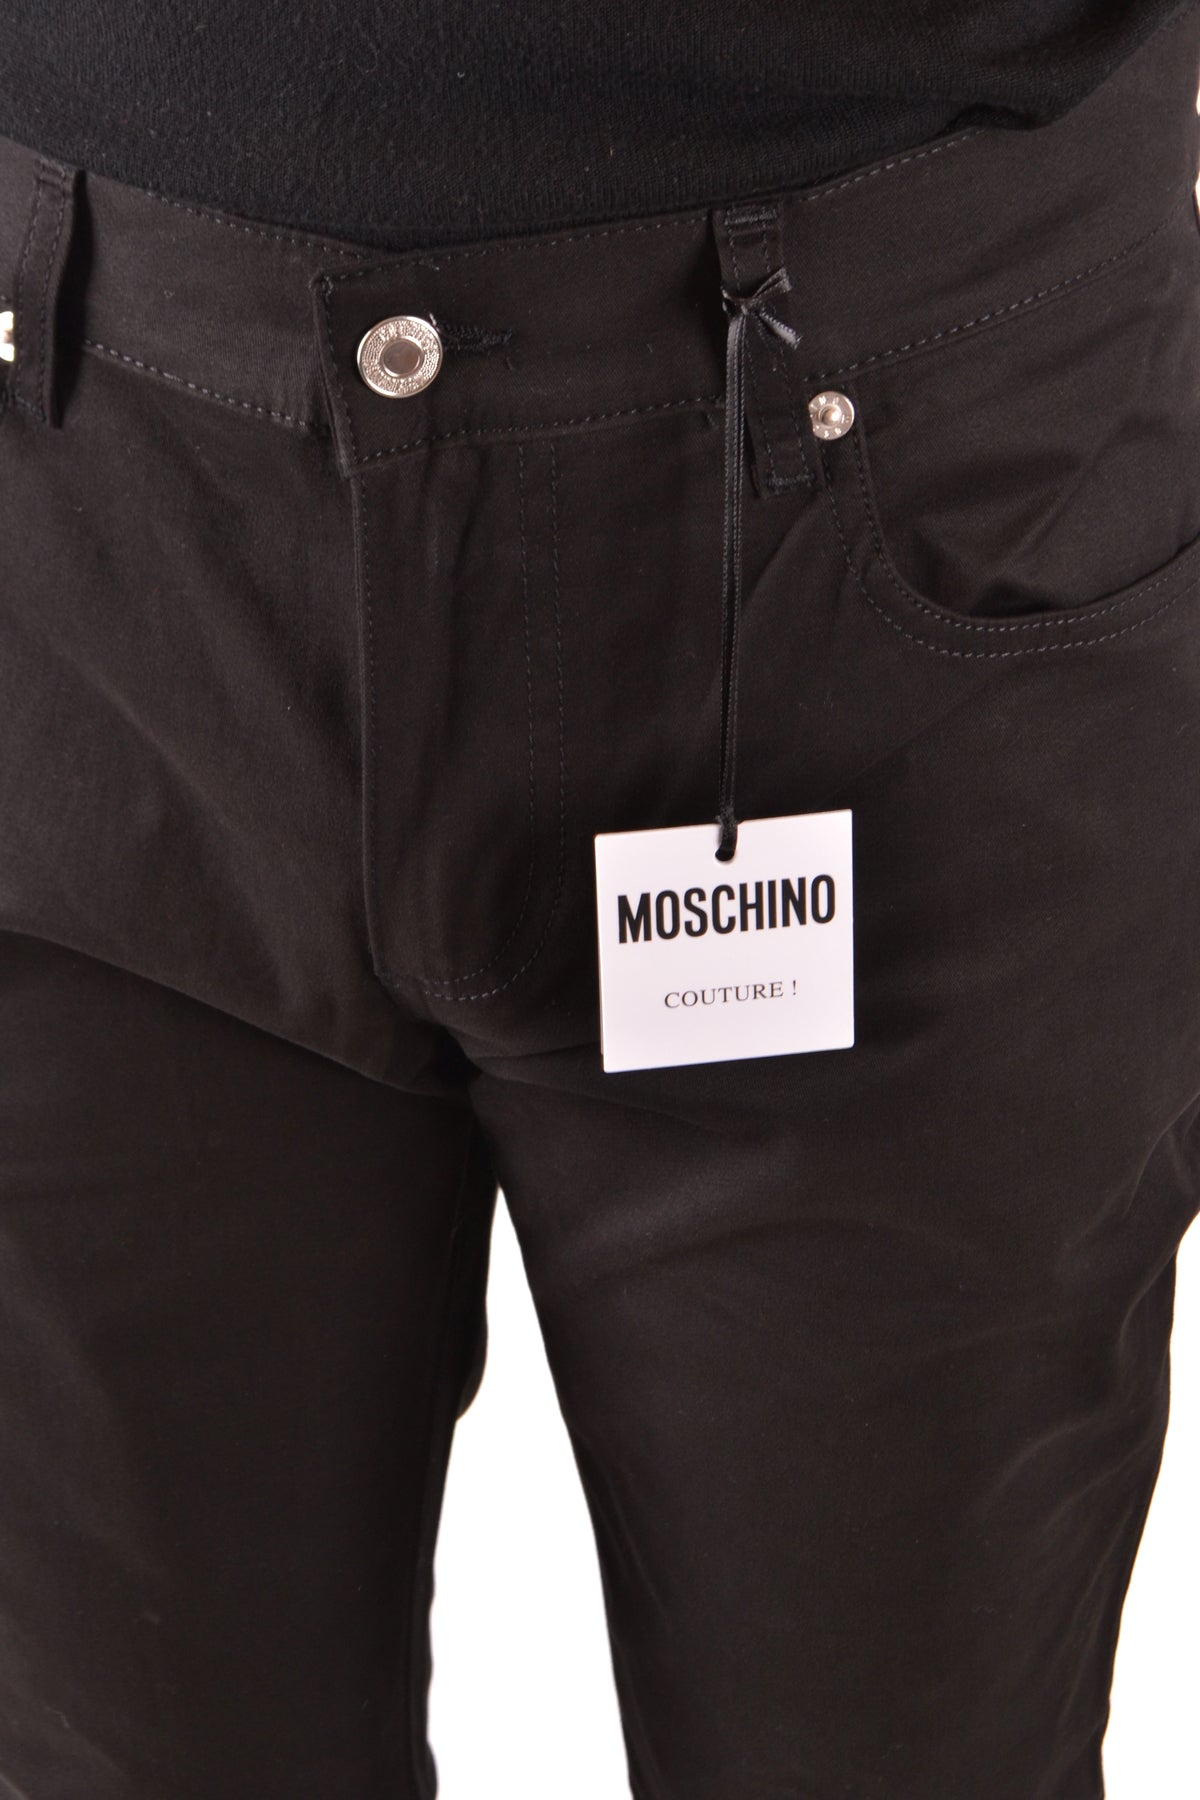 Jeans Moschino-Jeans - MAN-Product Details Season: Spring / SummerTerms: New With LabelMain Color: BlackGender: ManMade In: ItalyManufacturer Part Number: Z J0308Size: ItYear: 2018Clothing Type: JeansComposition: Cotton 99%, Elastane 1%-Keyomi-Sook